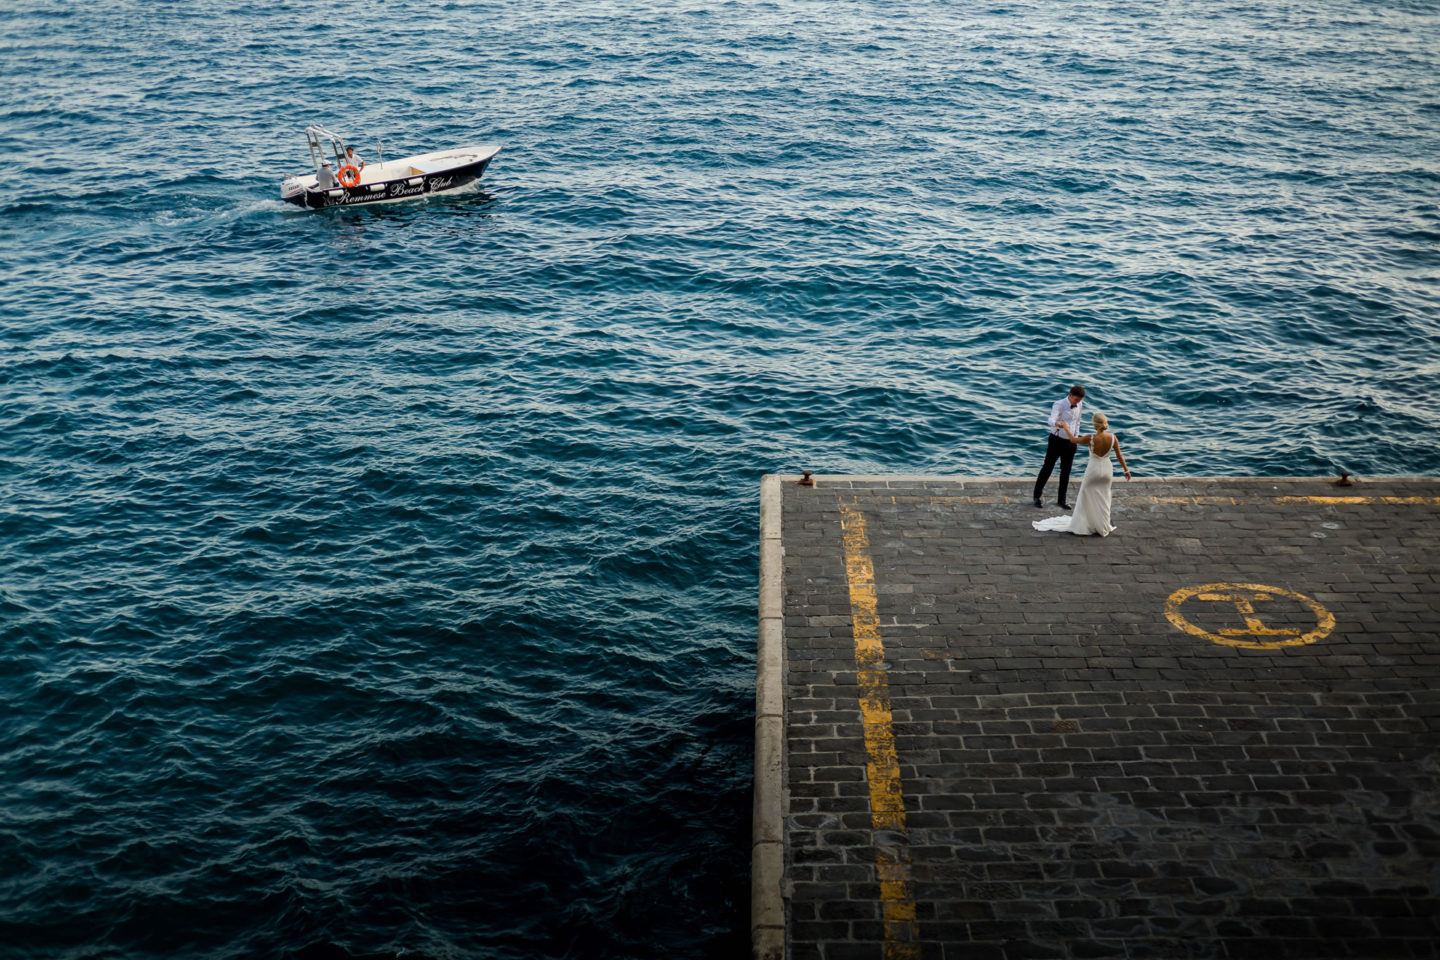 View :: Wedding in Positano. Sea and love :: Wedding photographer based in Florence Tuscany Italy :: photo-42 :: View